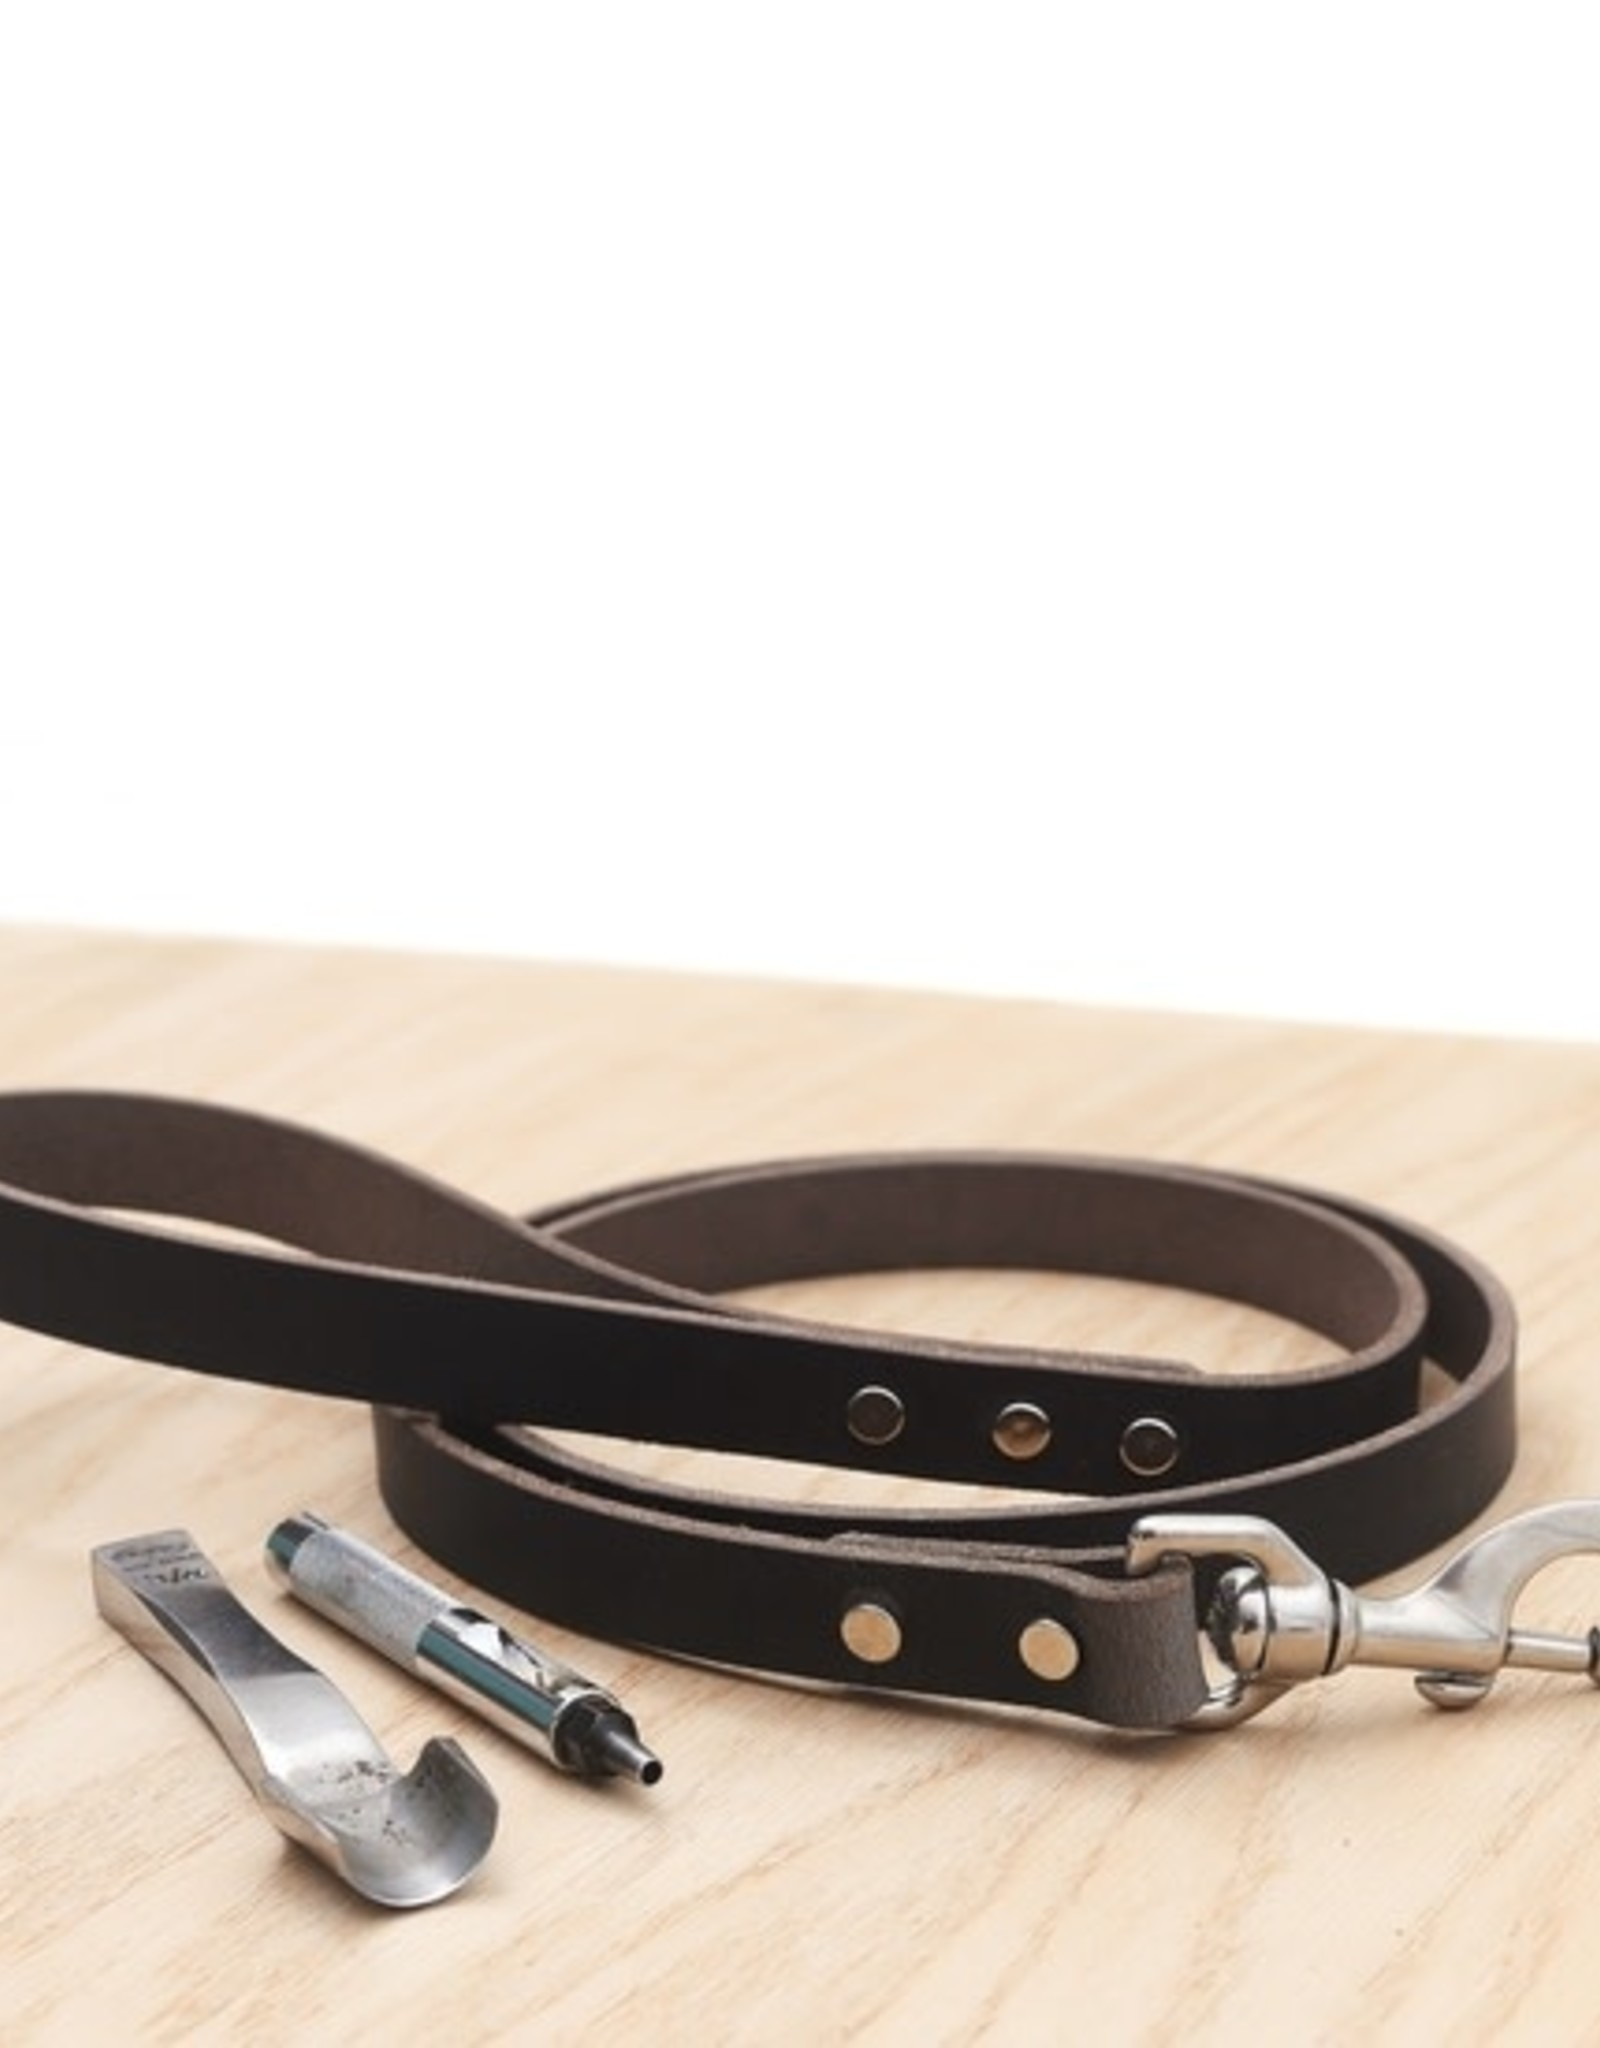 Mimi Green Leather Dog Leashes